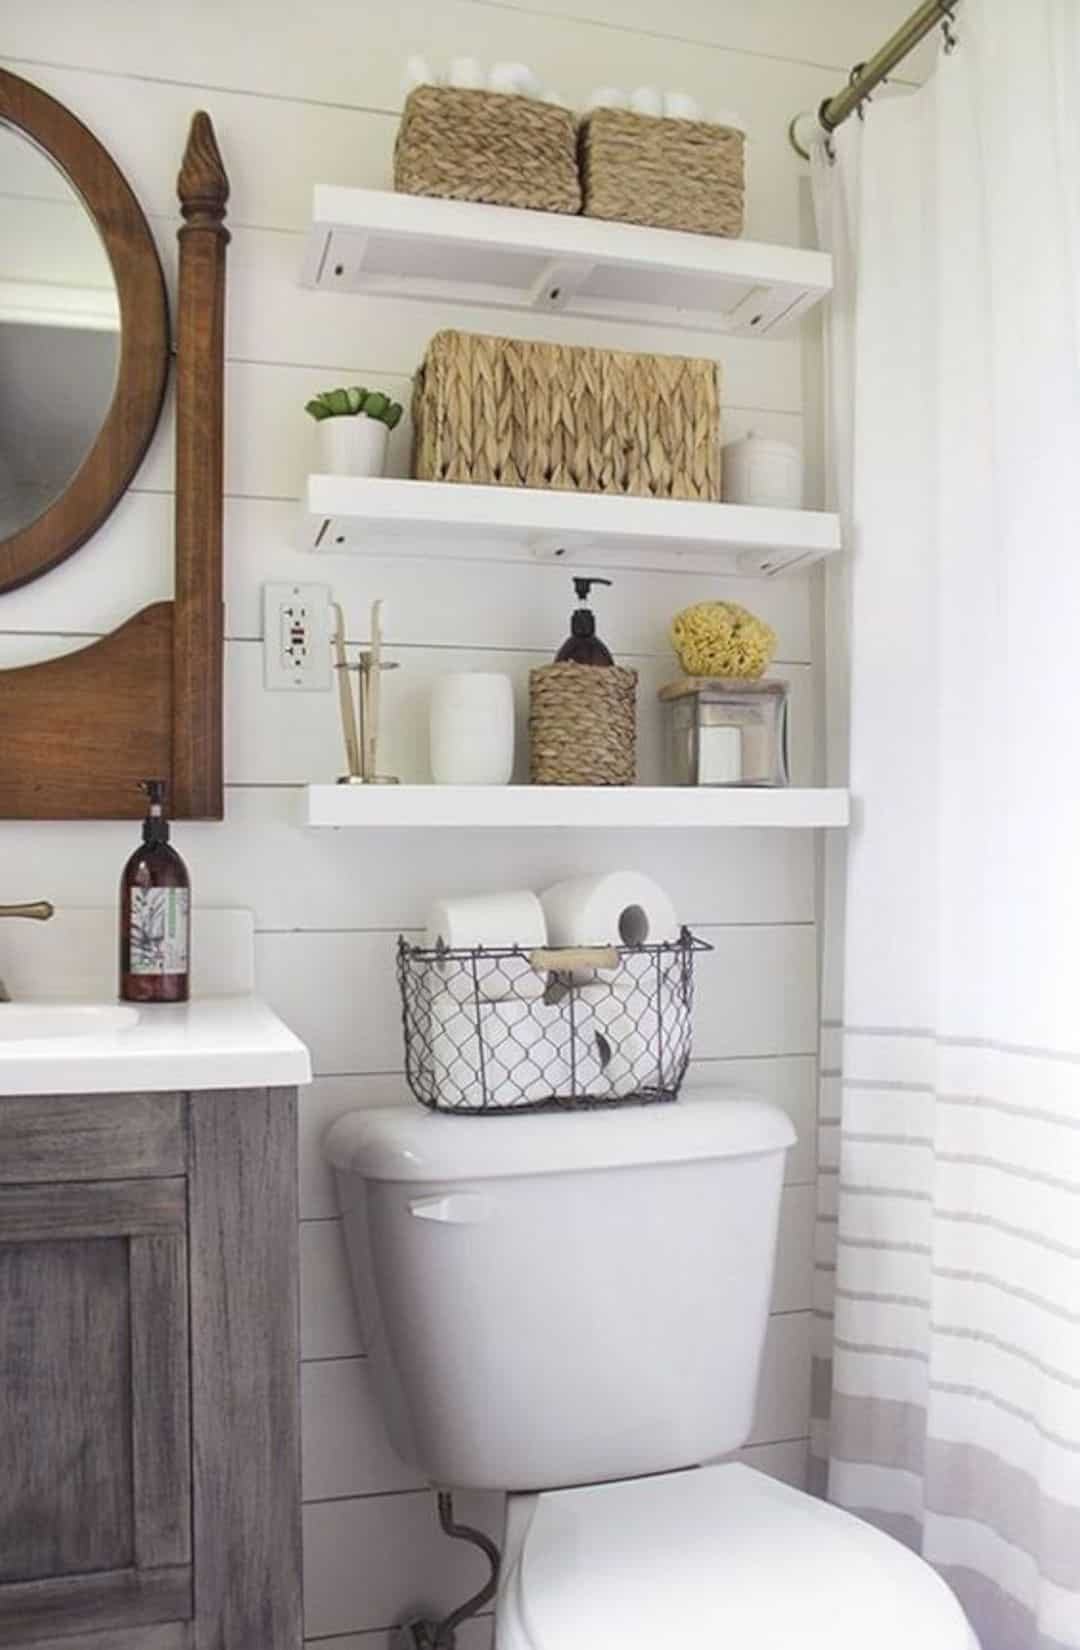 Bathroom Decoration Pictures Fresh 17 Awesome Small Bathroom Decorating Ideas